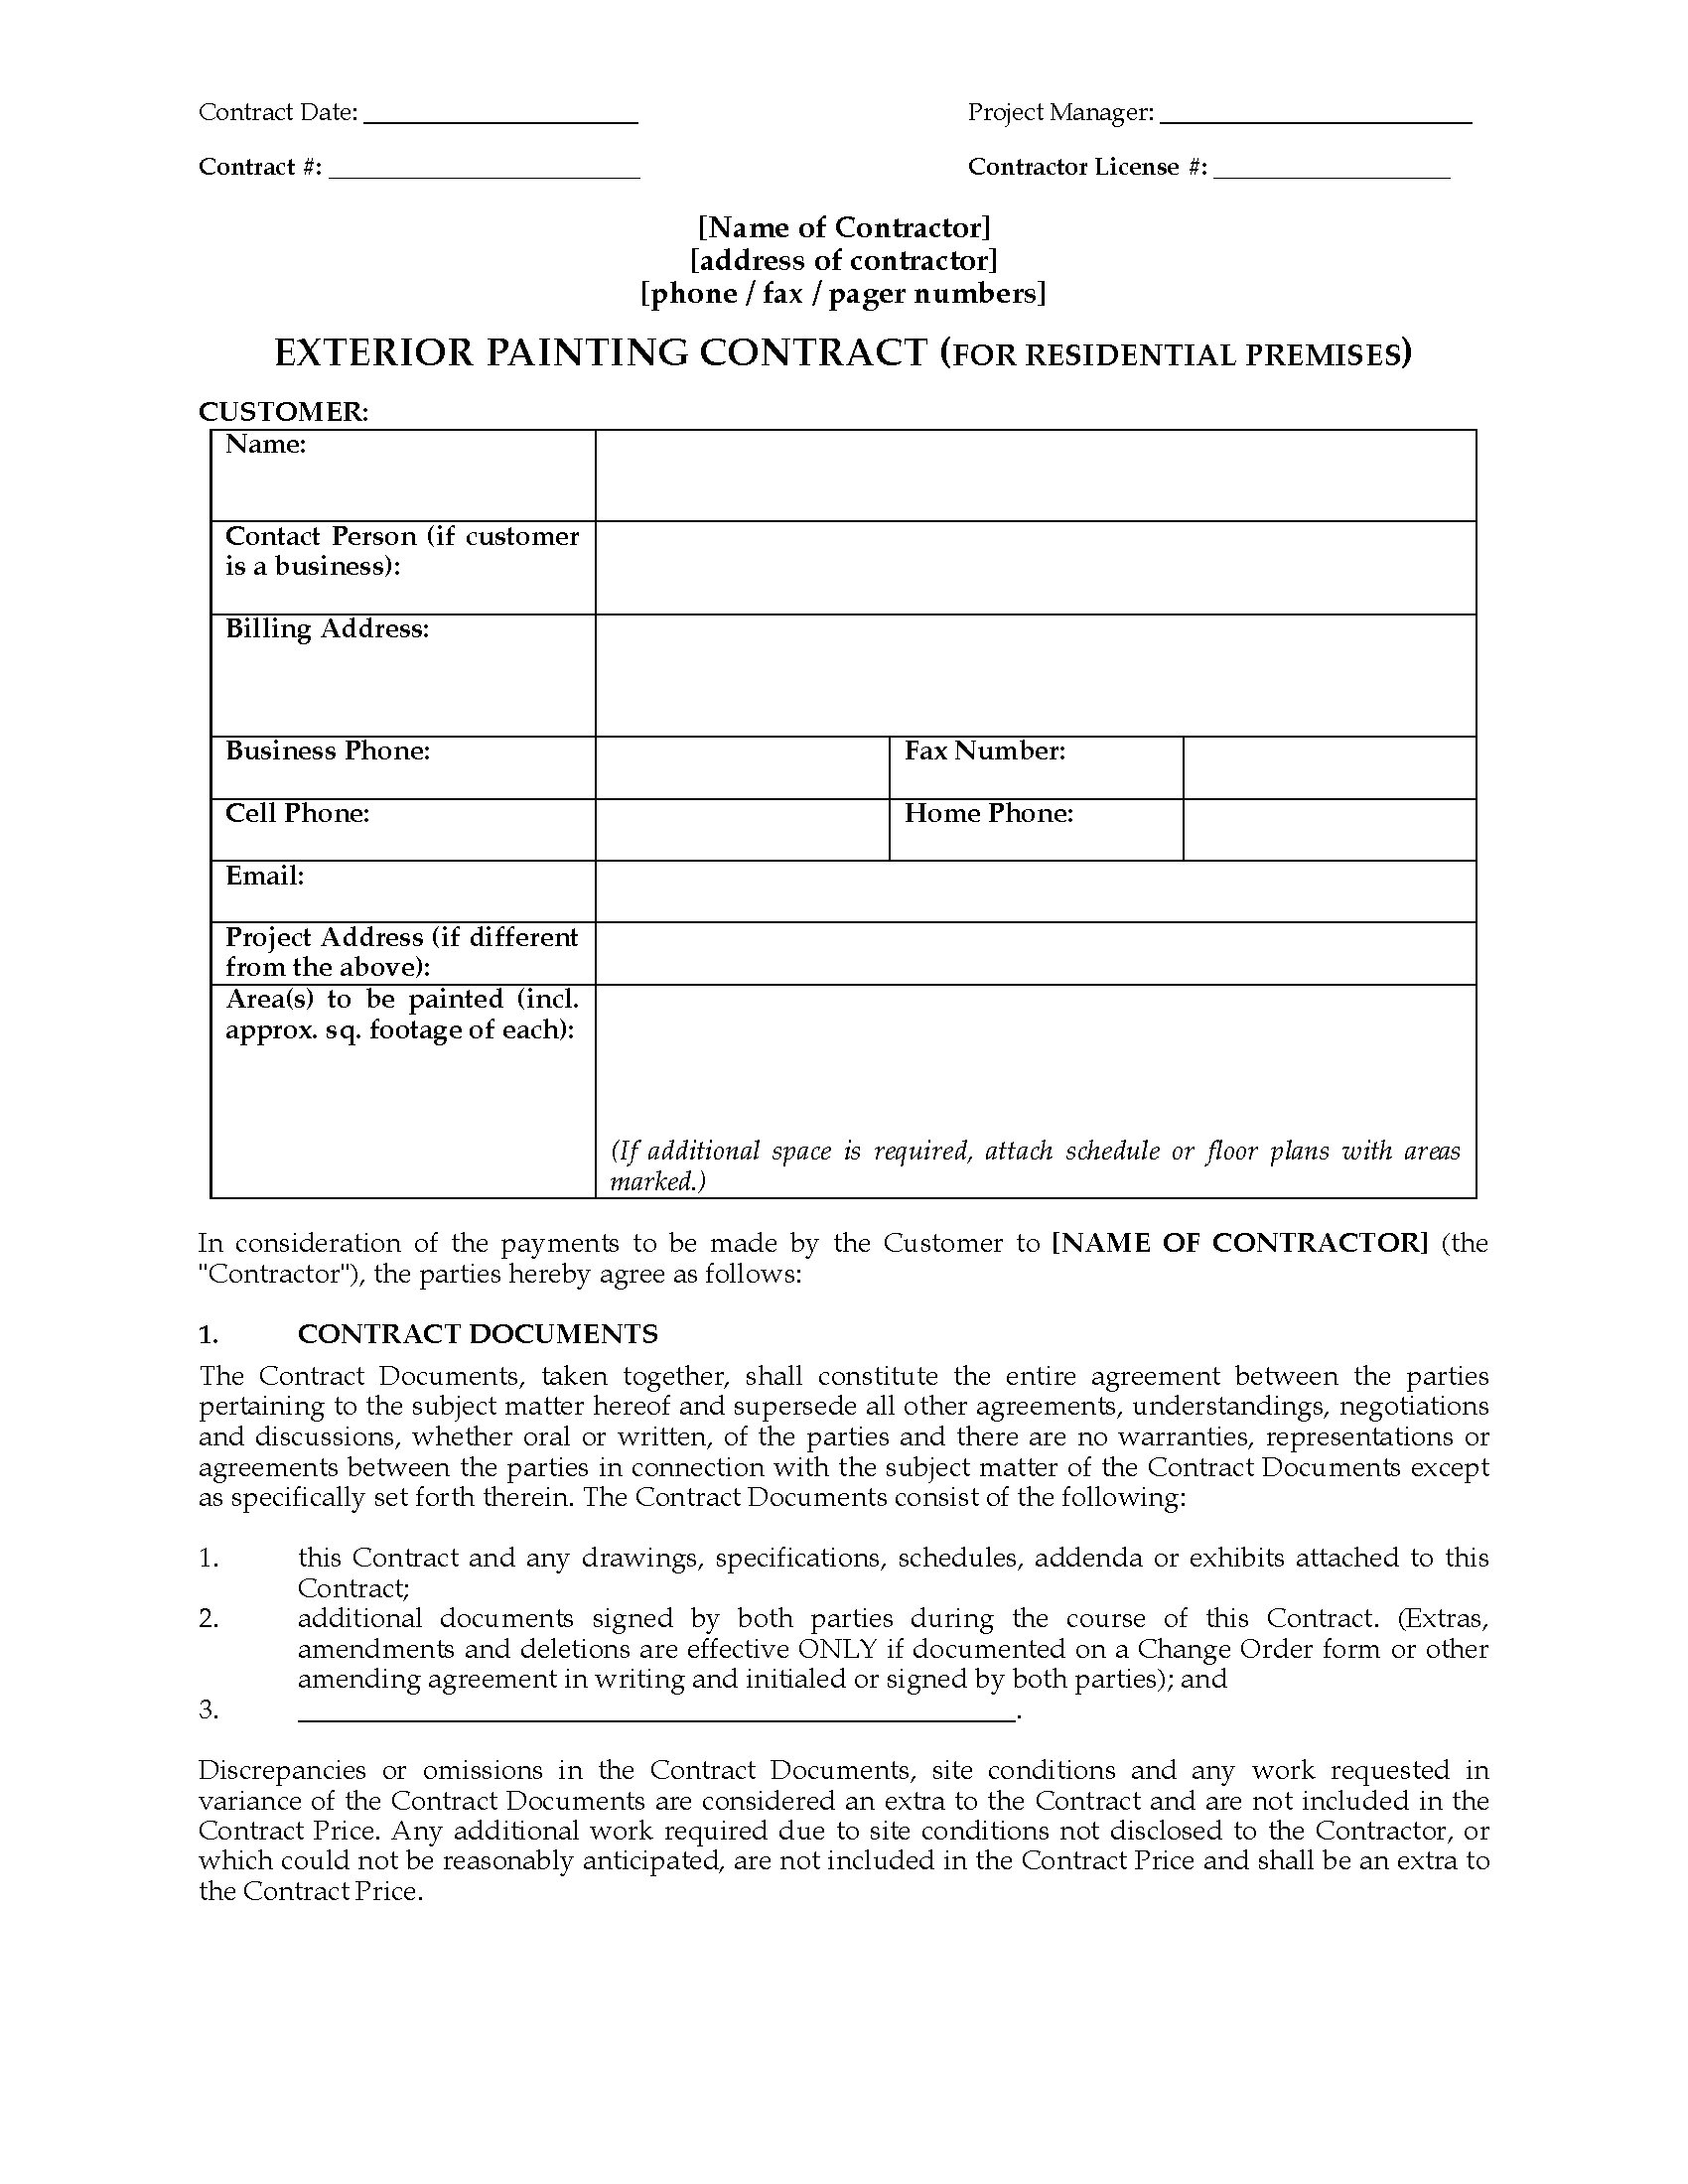 exterior painting contract residential